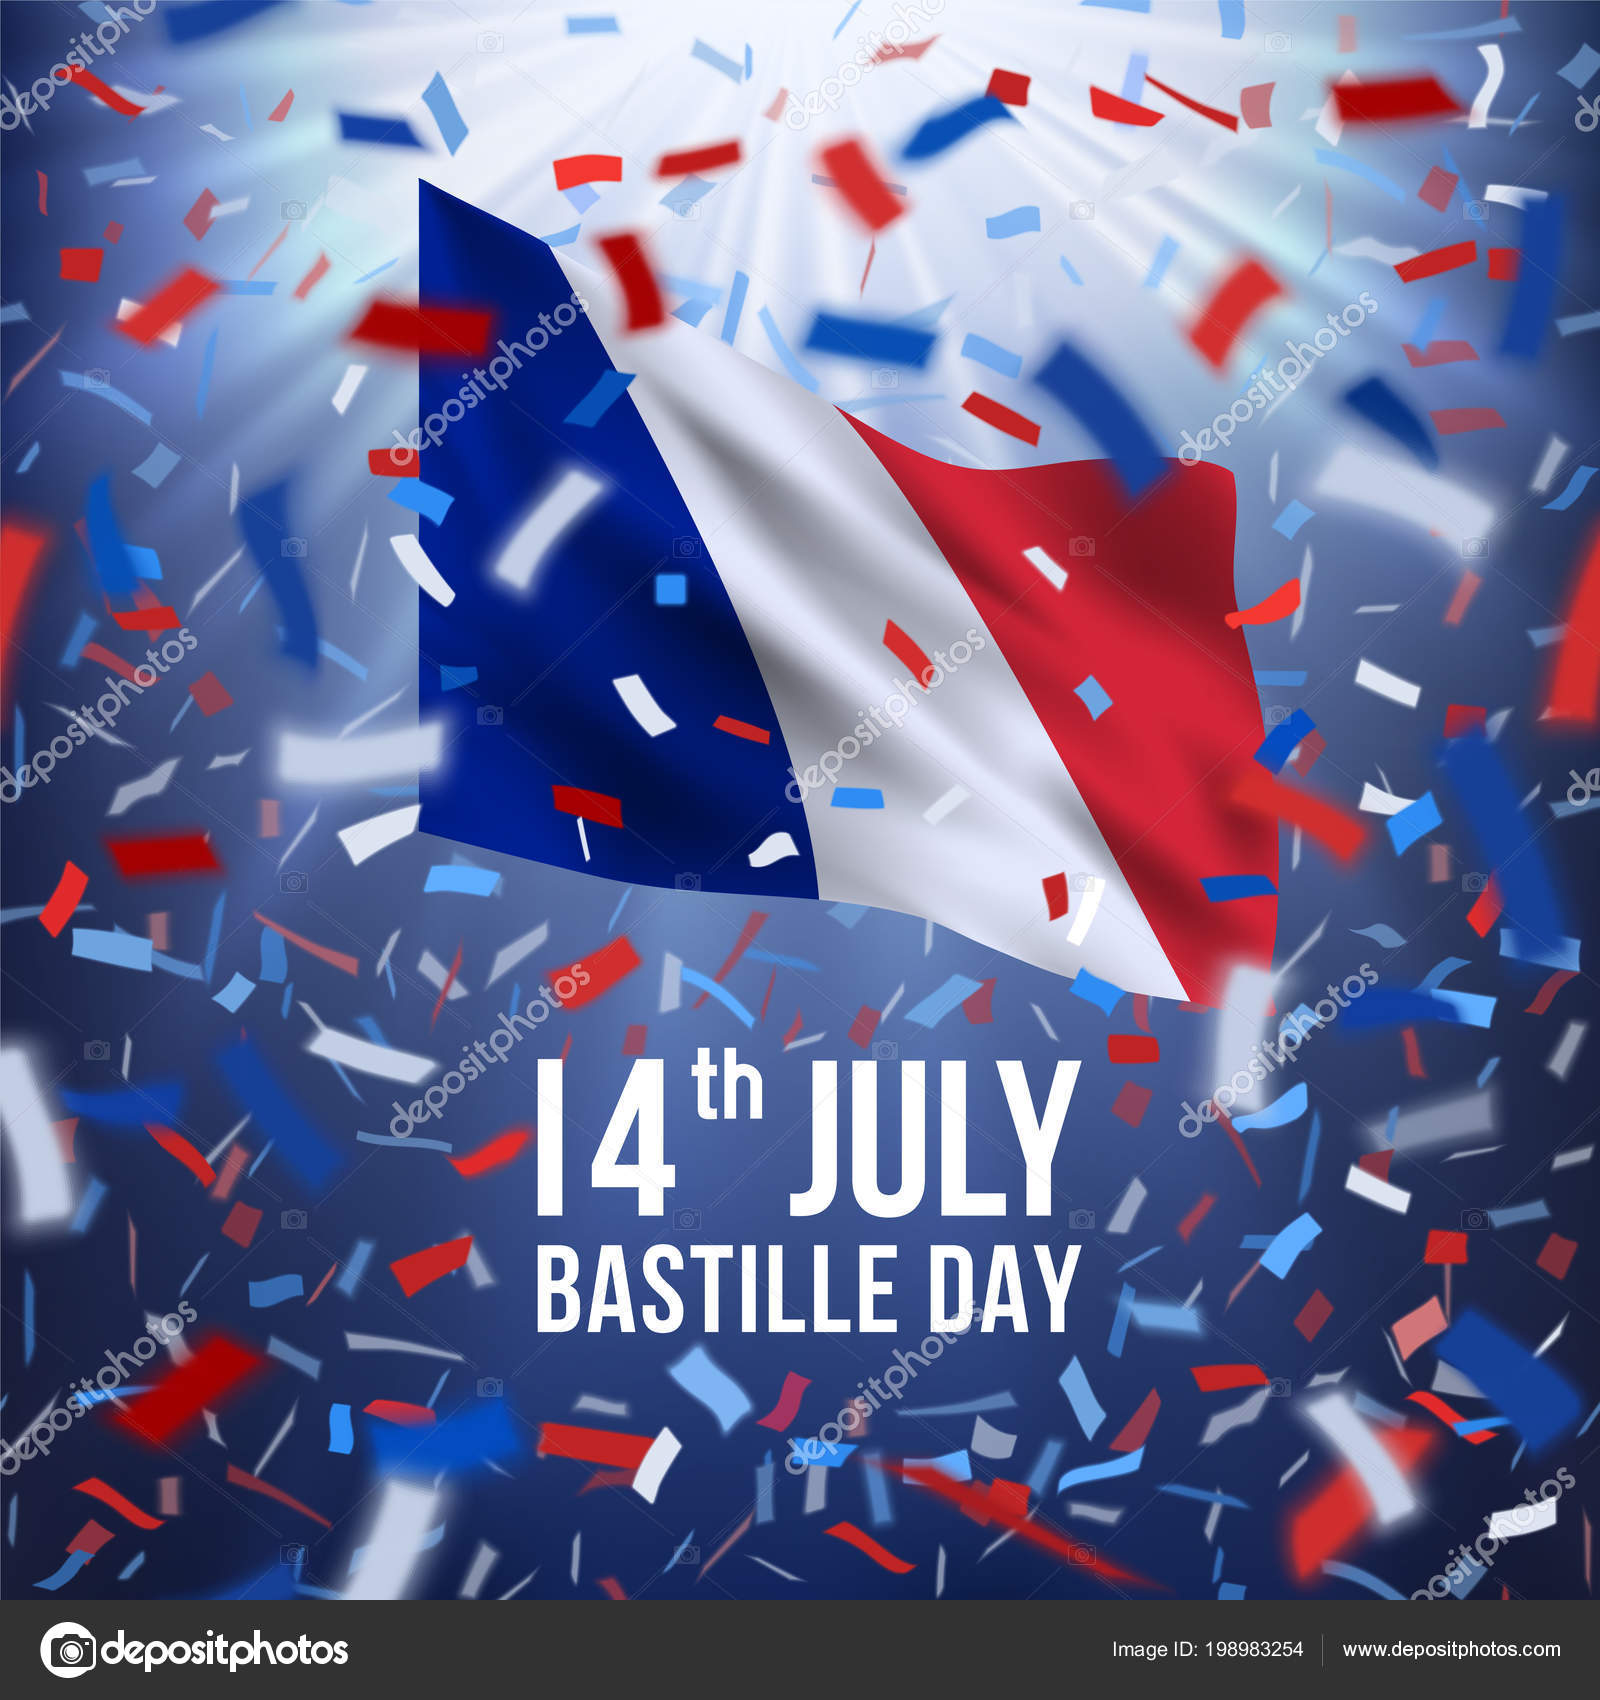 Happy bastille day celebration banner stock vector mirrima france independence greeting 14 july happy bastille day greeting card with colorful flying confetti and national flag of of france m4hsunfo